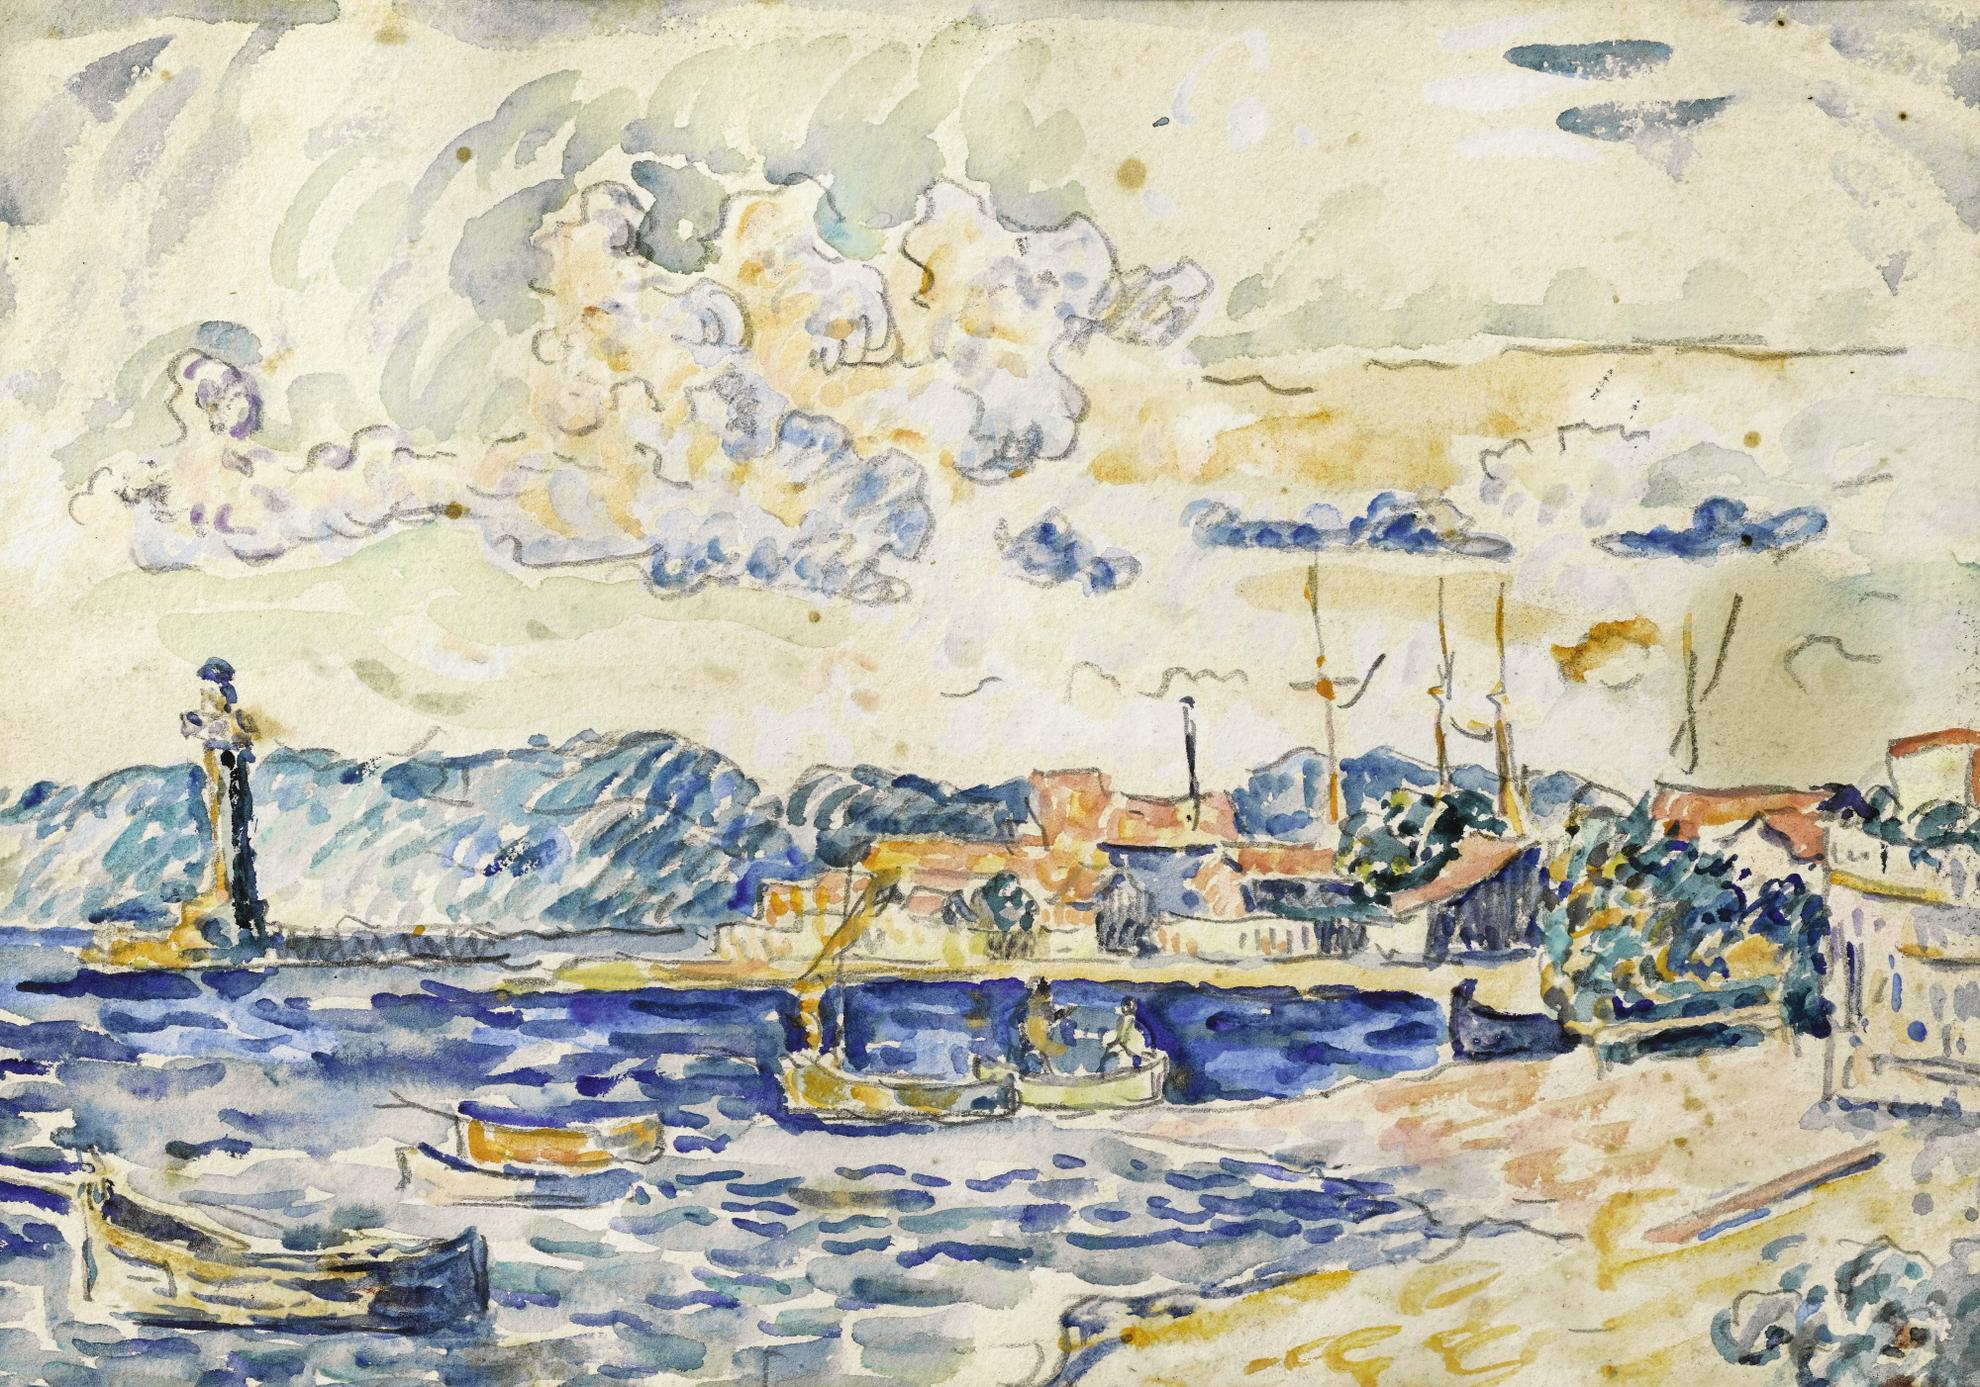 Paul Signac-Saint-Tropez-1900